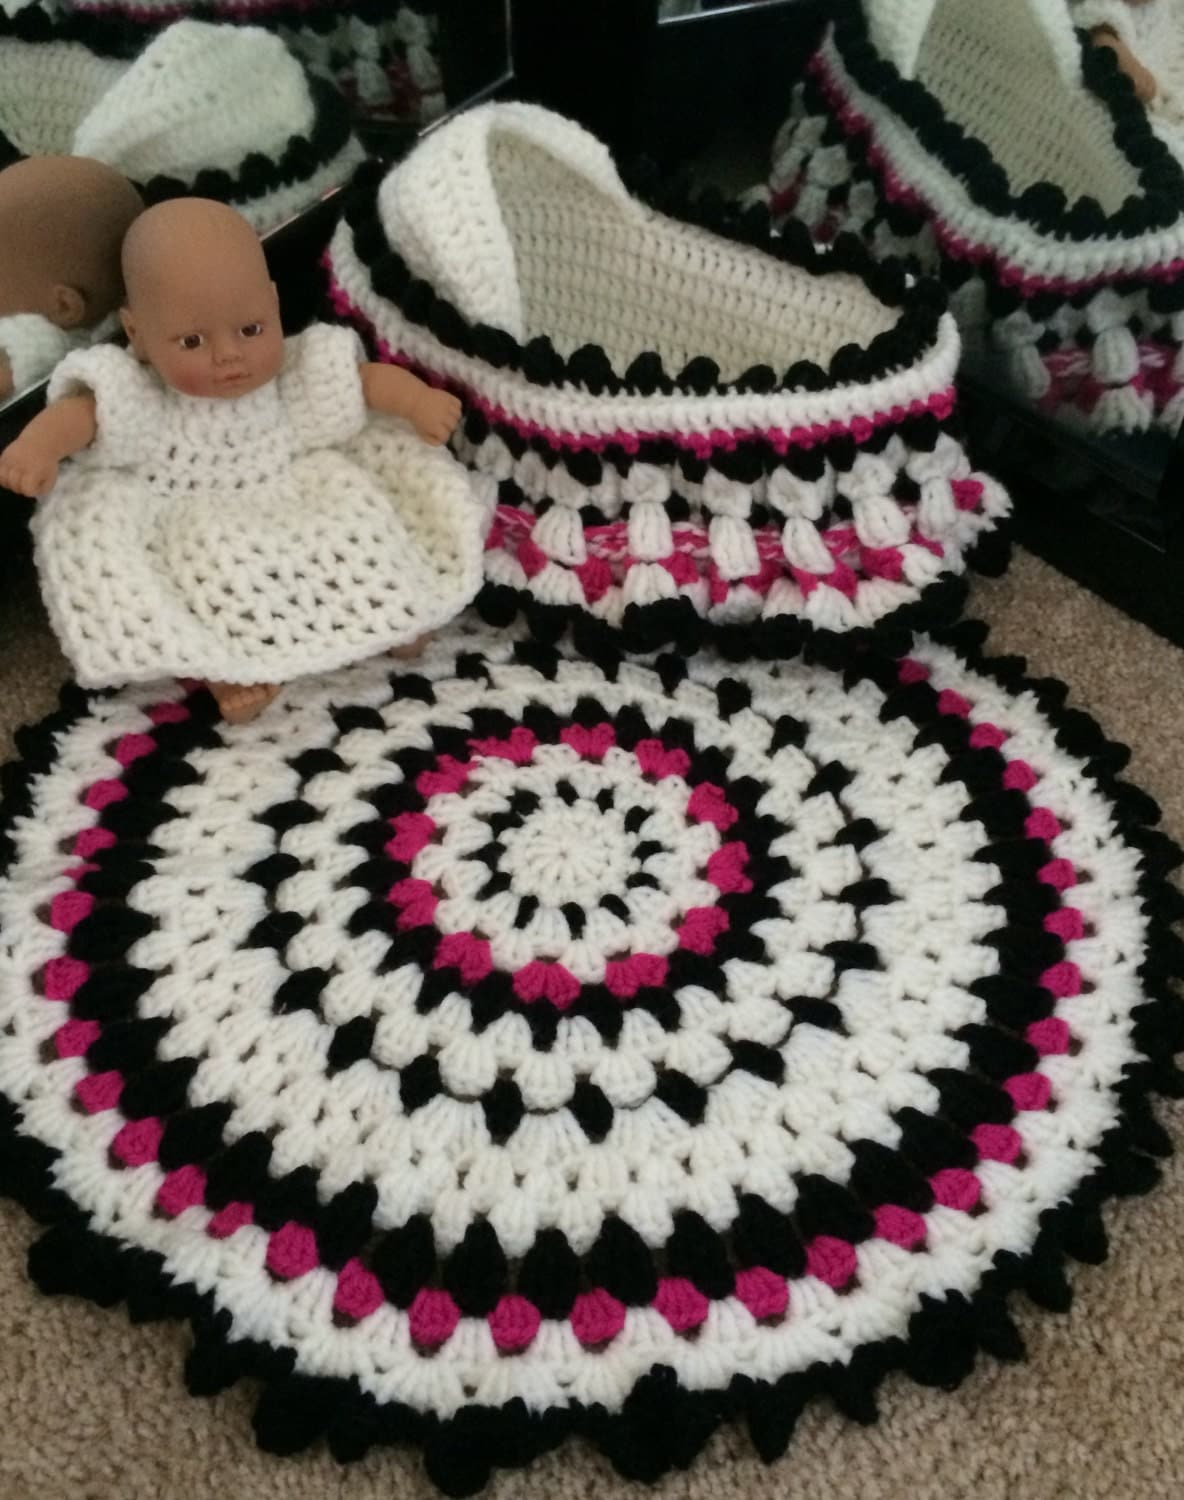 Toddler Crochet Purse Pattern : Small Crochet Baby Cradle Purse PATTERN